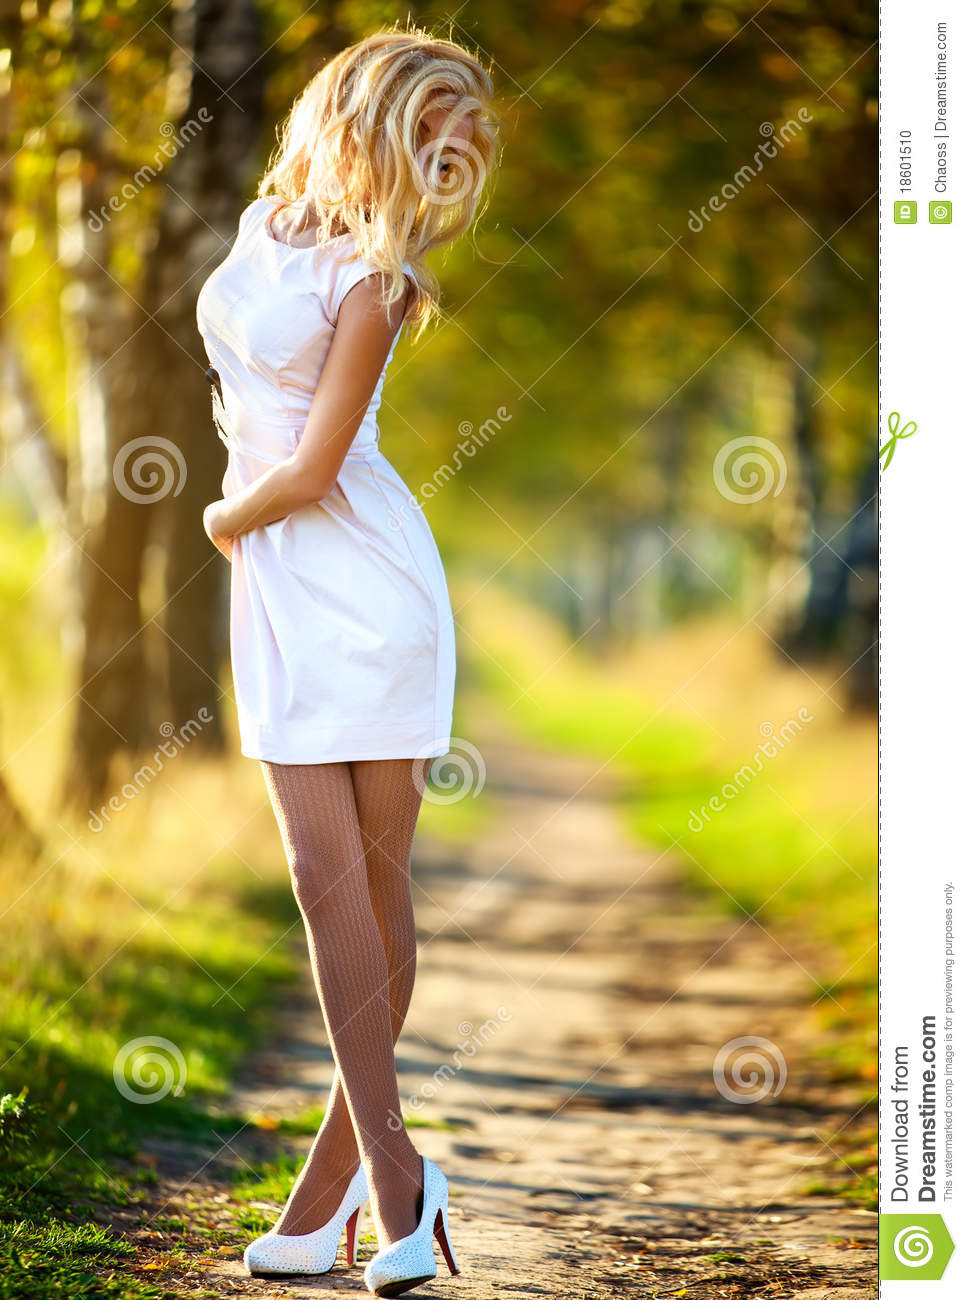 Young woman walking stock photo. Image of vibrant, walk ...